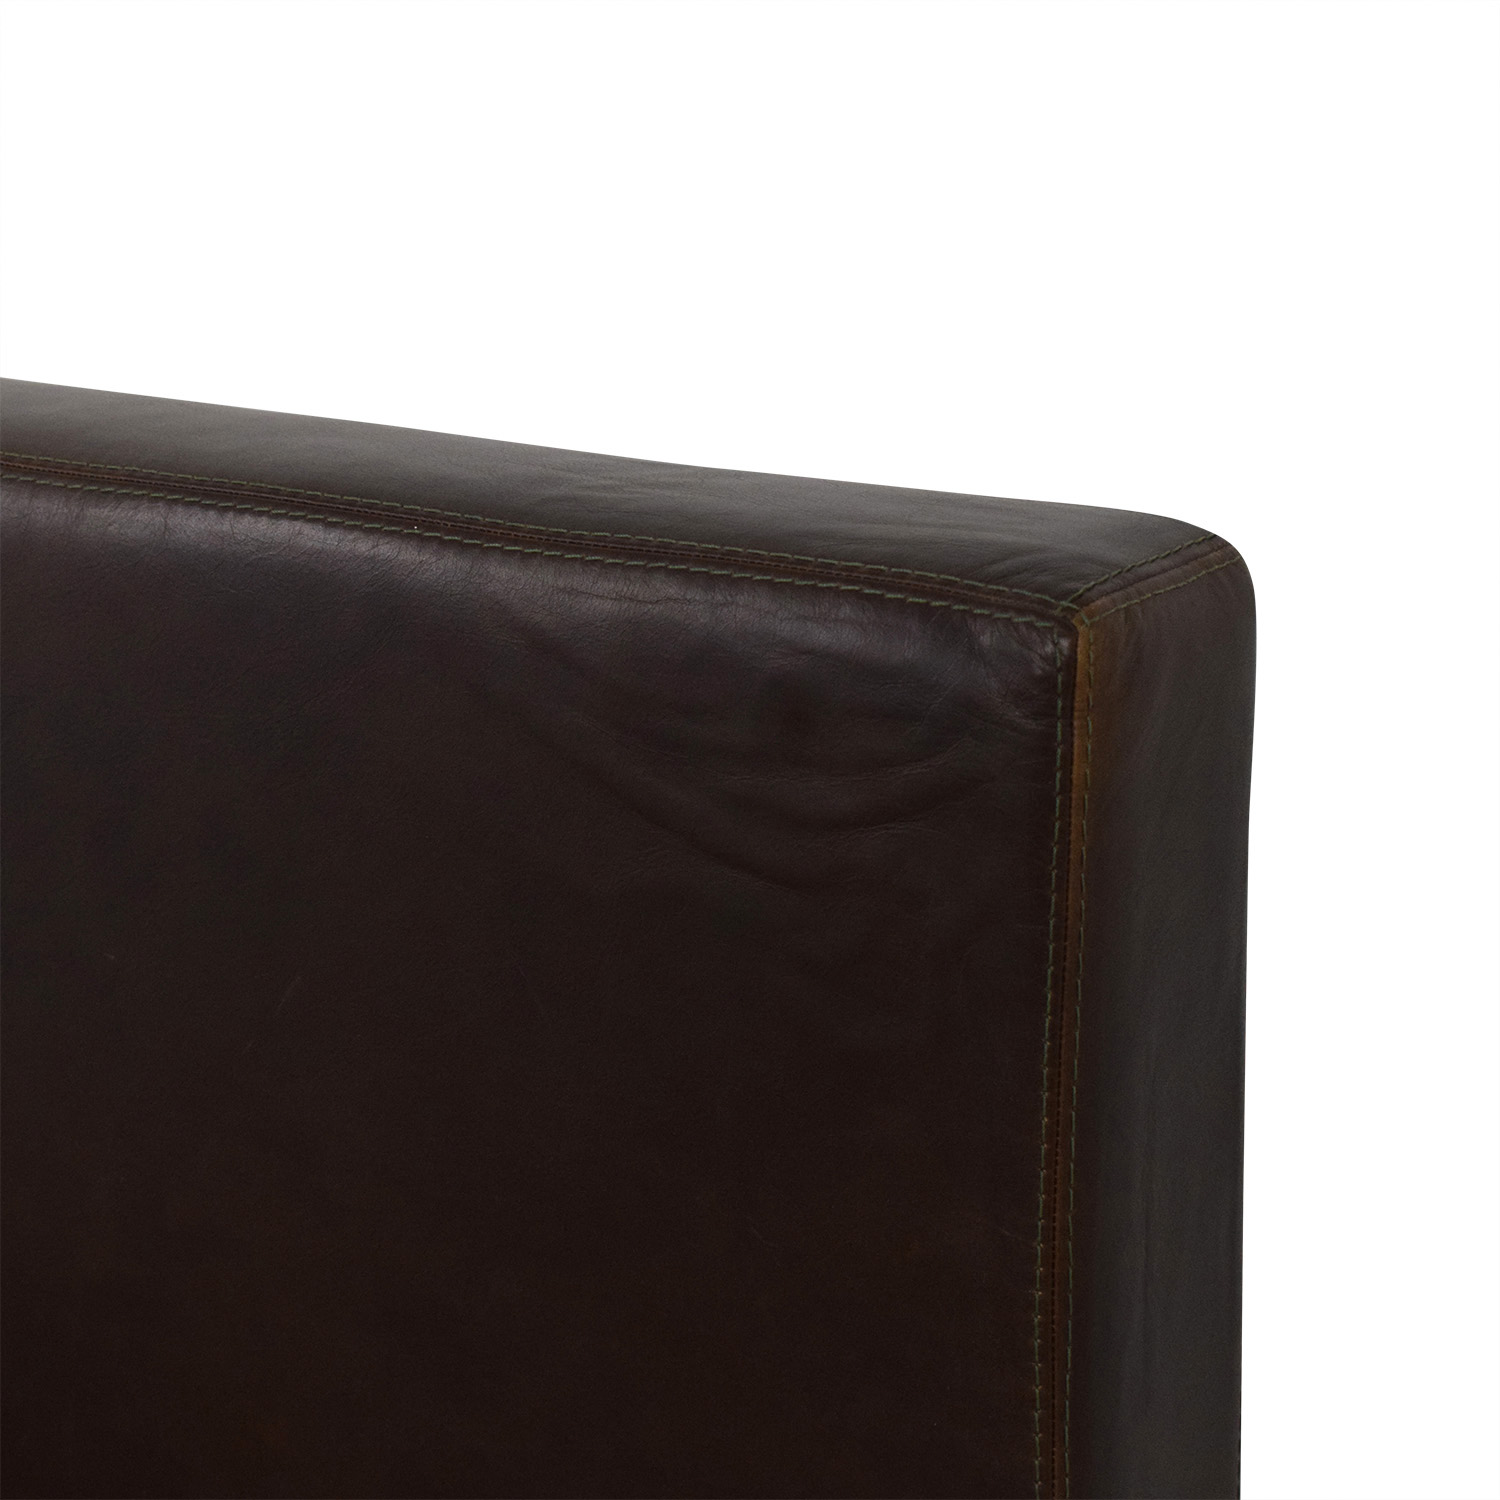 Pottery Barn Pottery Barn Queen Headboard and Bedframe dark brown